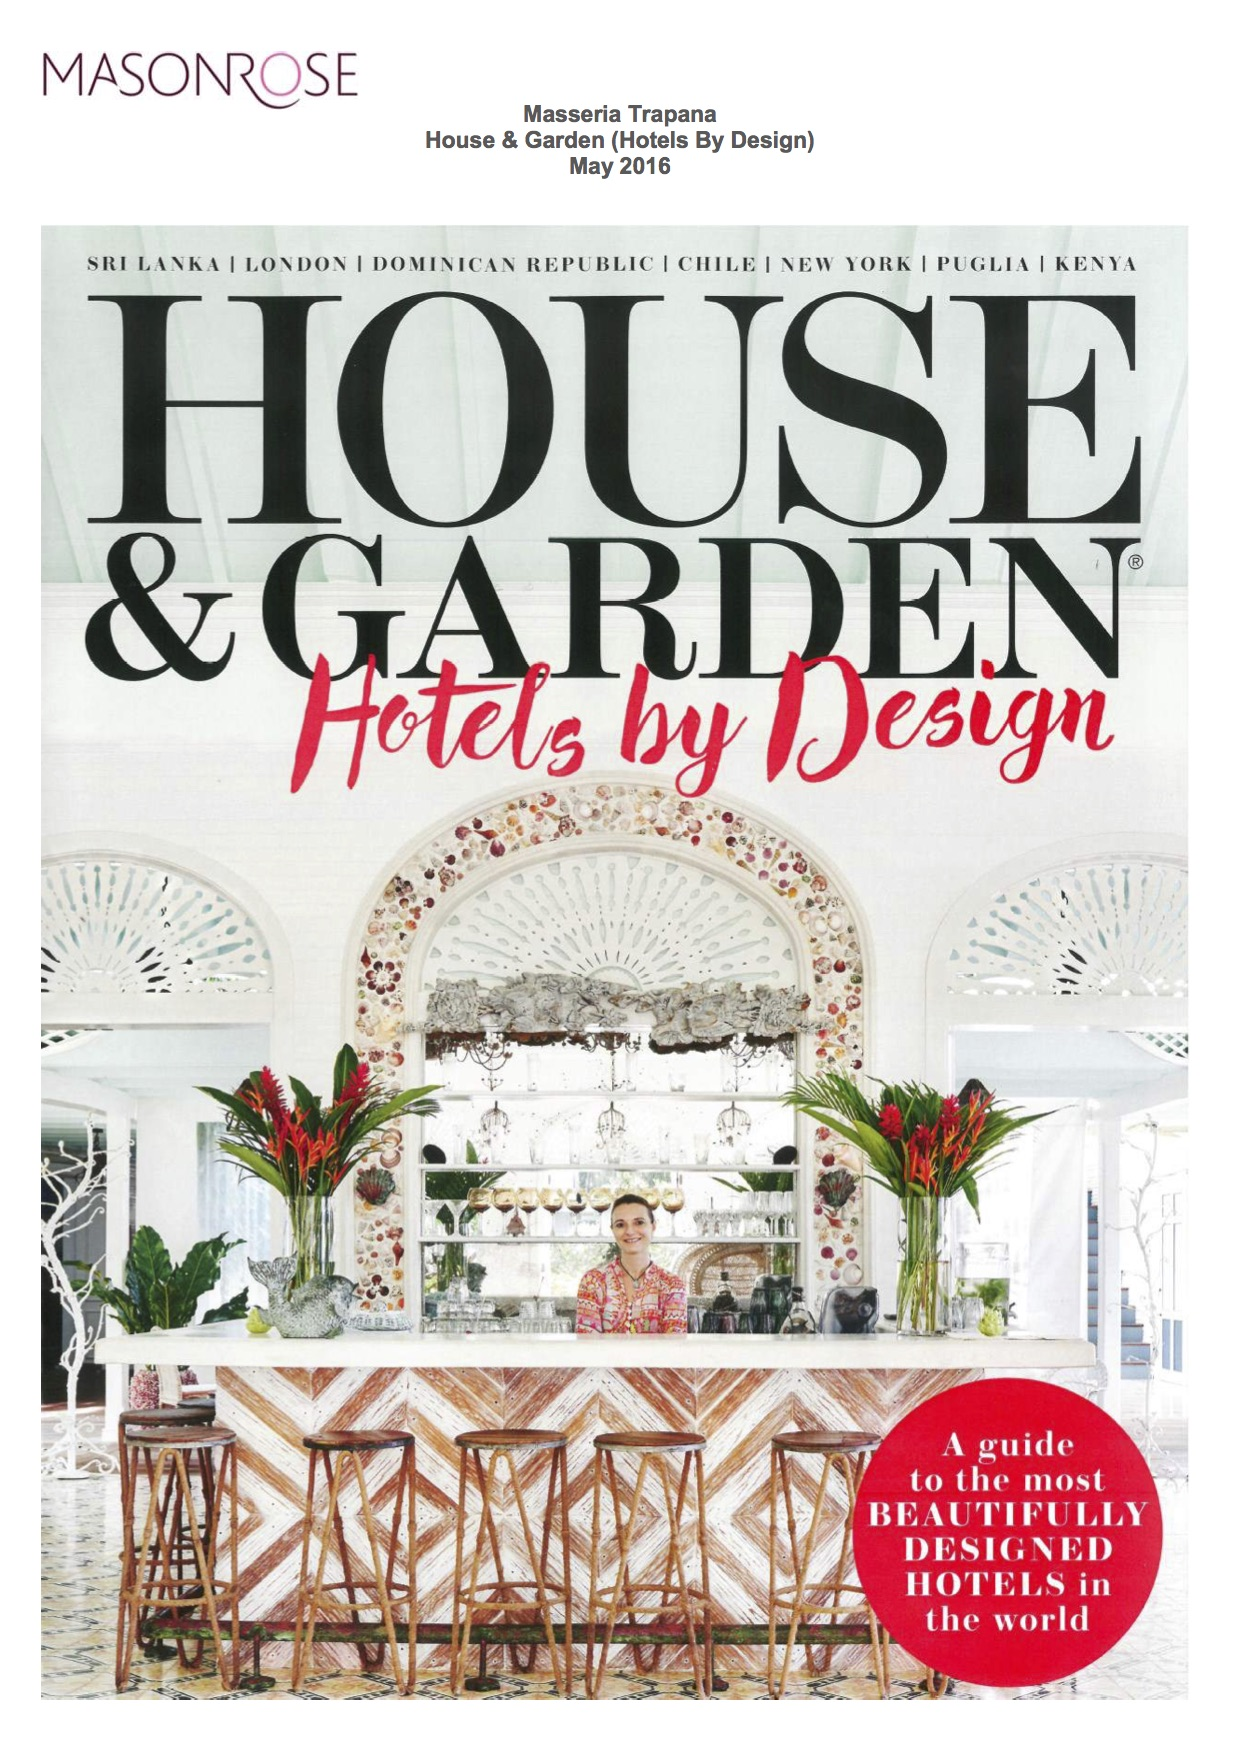 Homes & Garden (Hotels By Design) // May 2016 « Masseria rapanà - ^